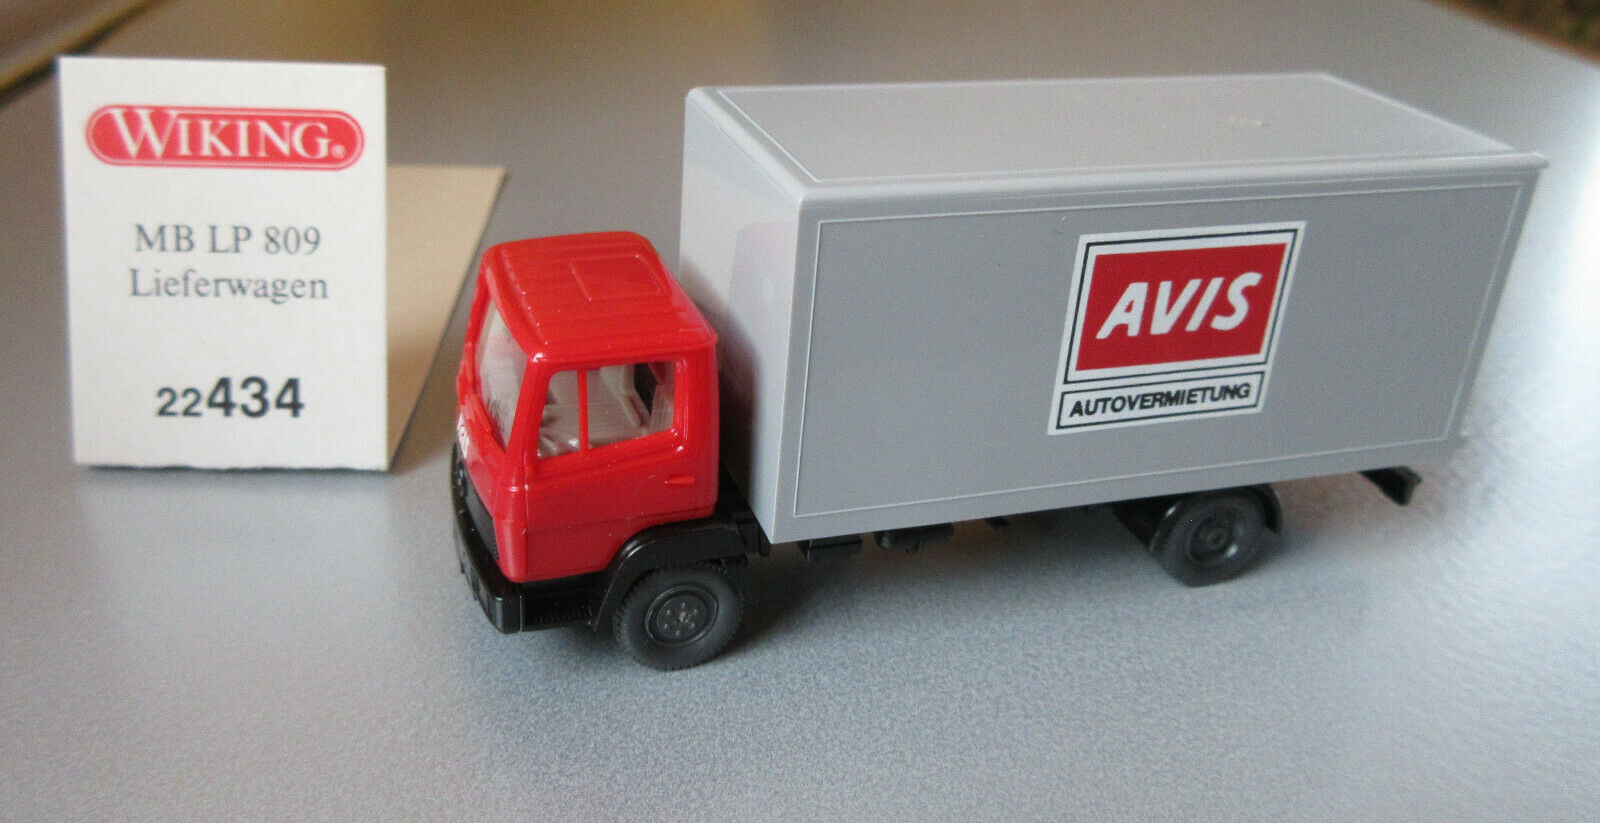 22434 Wiking HO MB LP 809 City Cargo AVIS noleggio auto scala 1:87